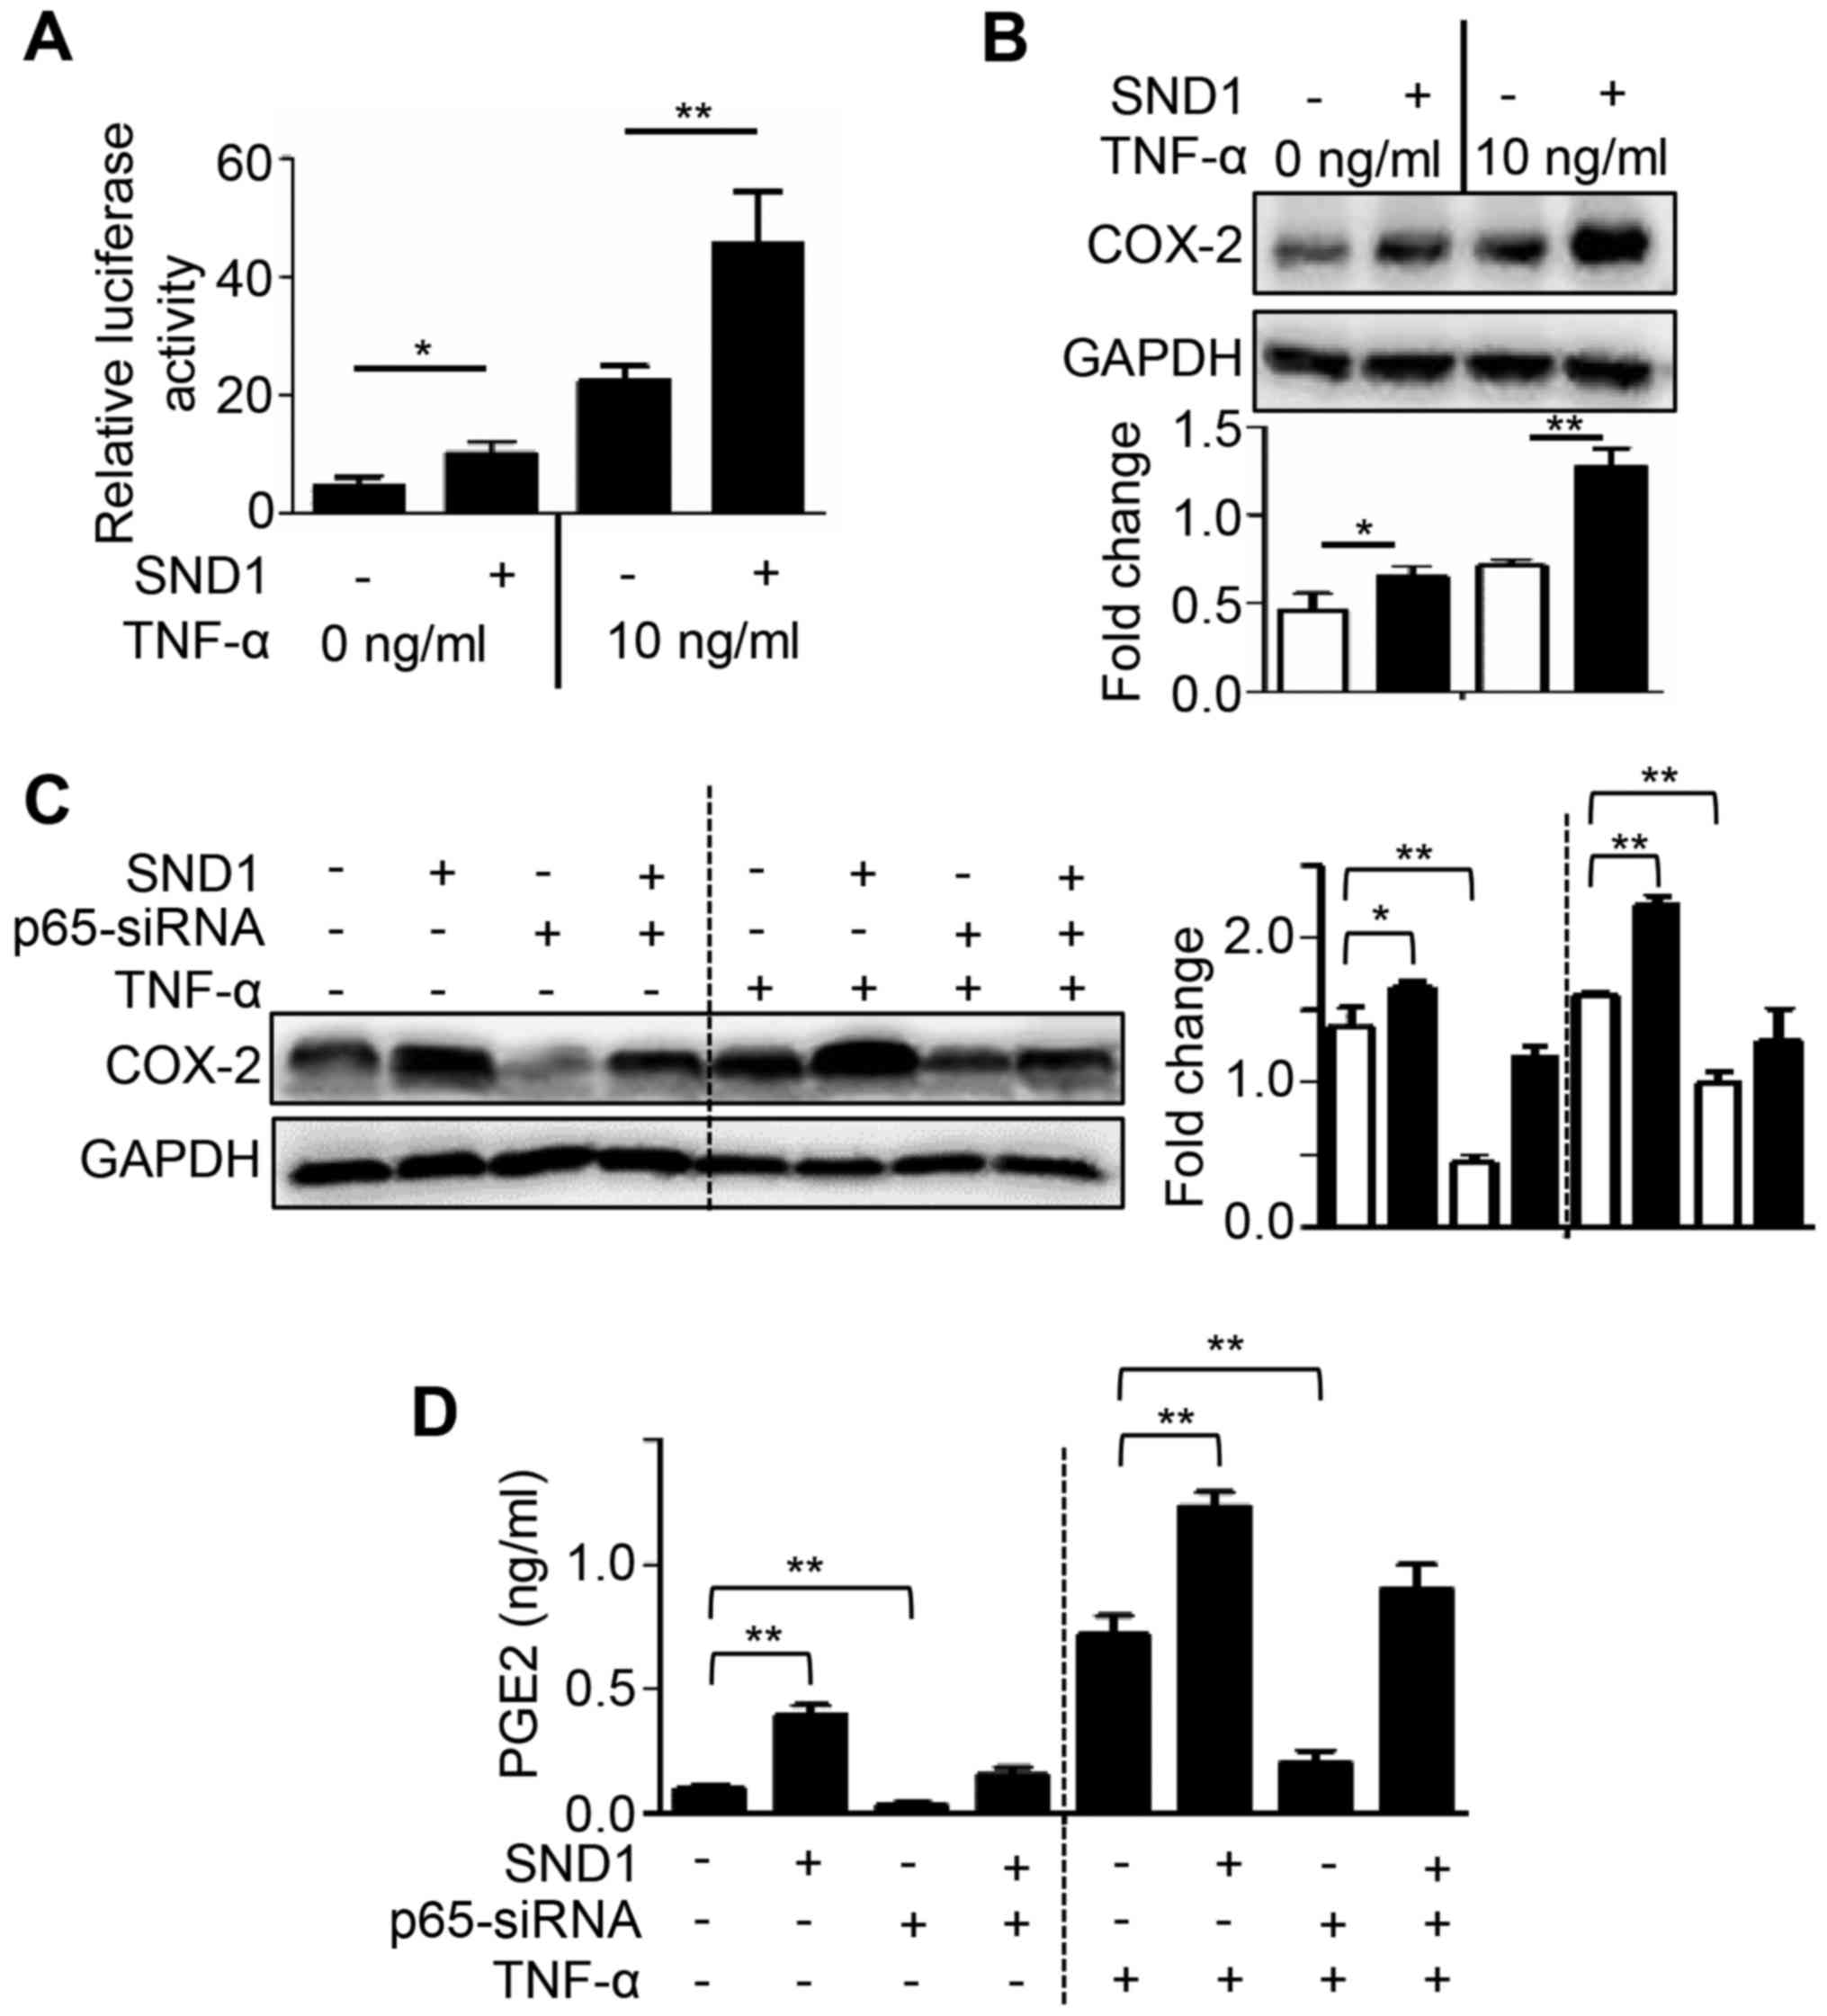 SND1 promotes the proliferation of osteosarcoma cells by